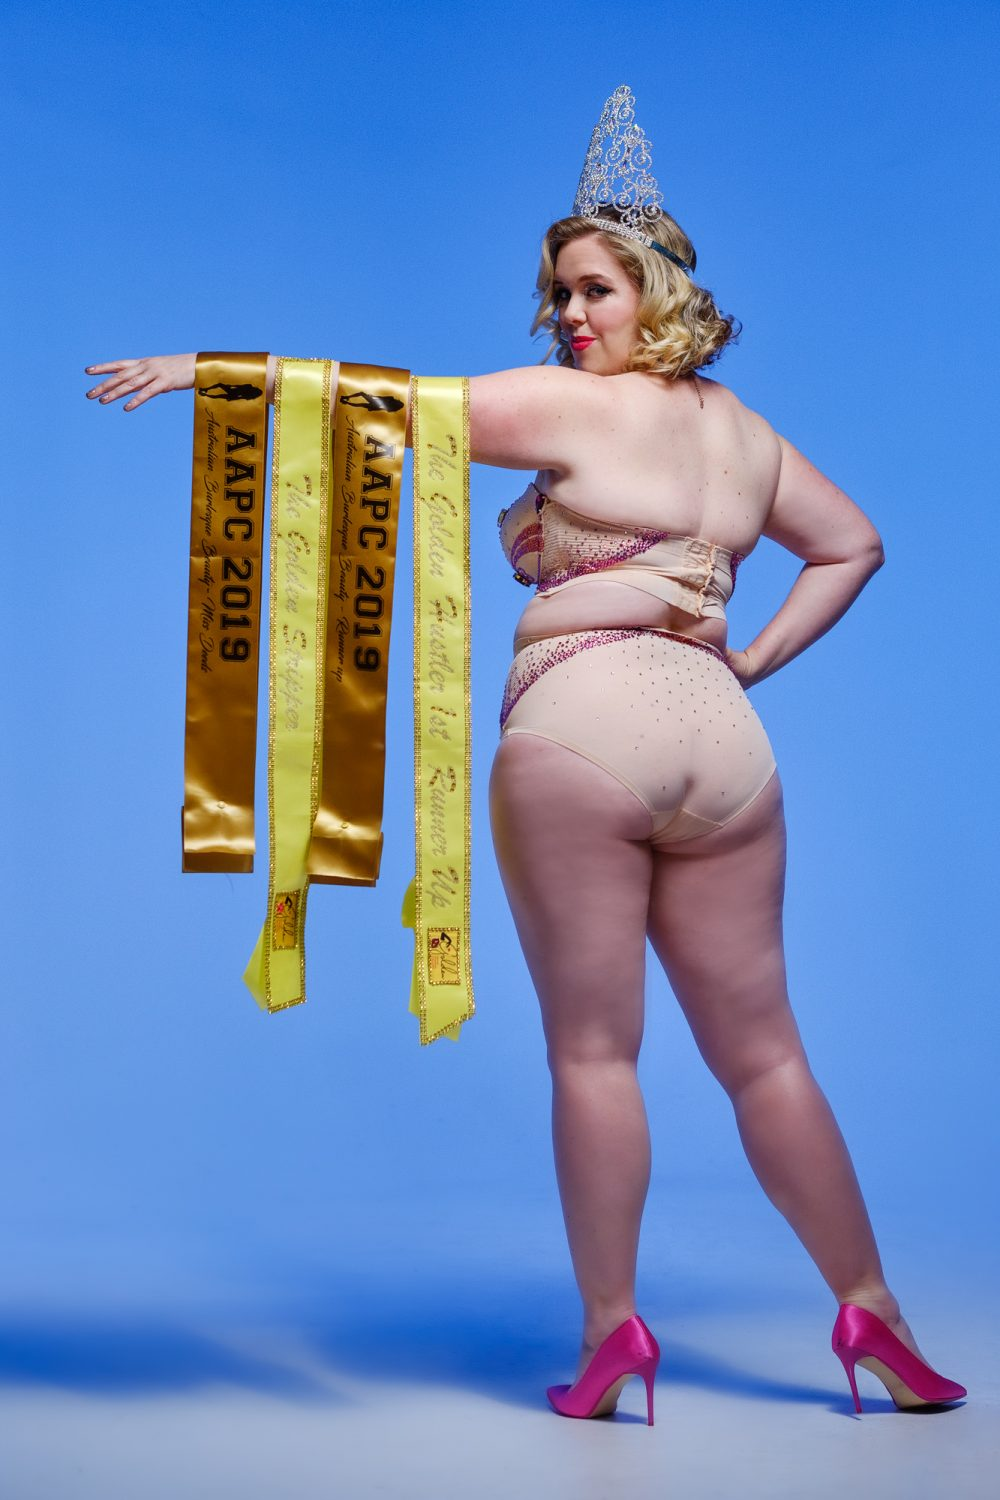 Mae wears skin colour lingerie and holds award sashes and wears a large tiara